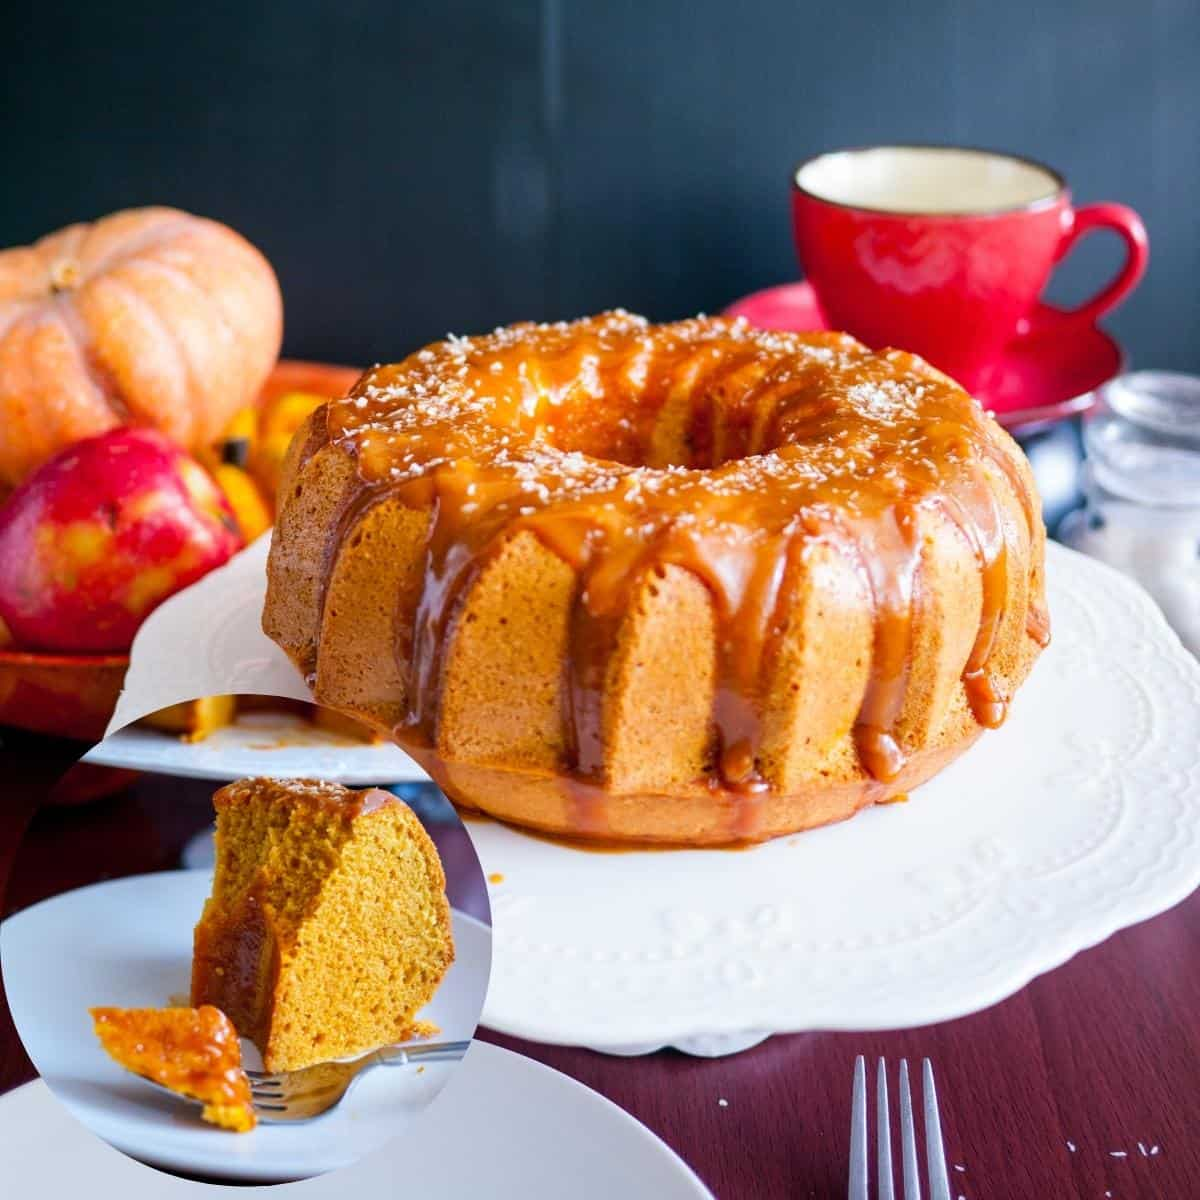 A pumpkin bundt cake on a cake stand.